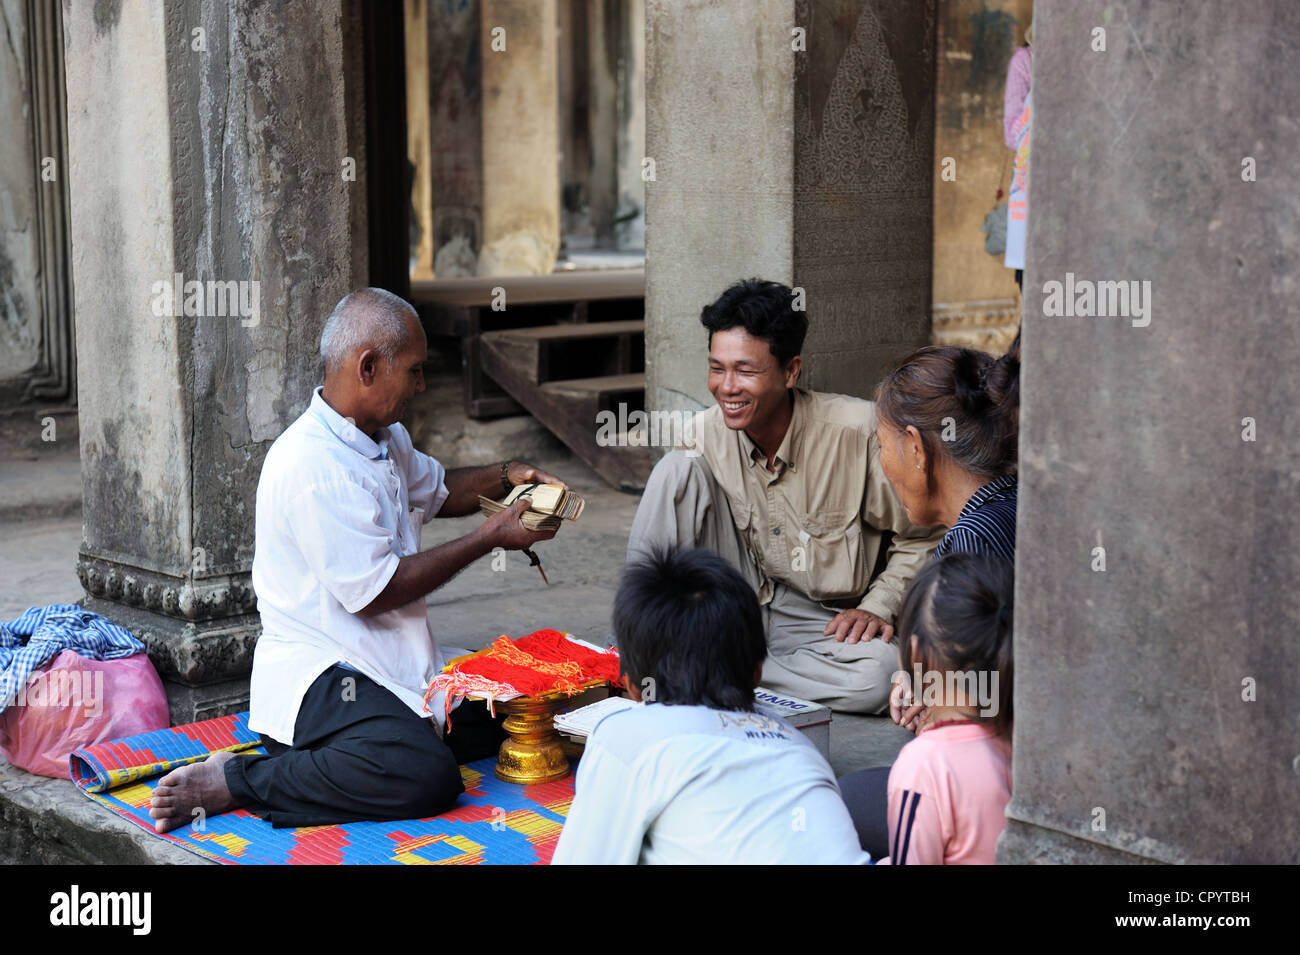 SIEM REAP, CAMBODIA - AUGUST 14: A group of local residents cast fortune on August 14, 2011 in Angkor wat temple, - Stock Image